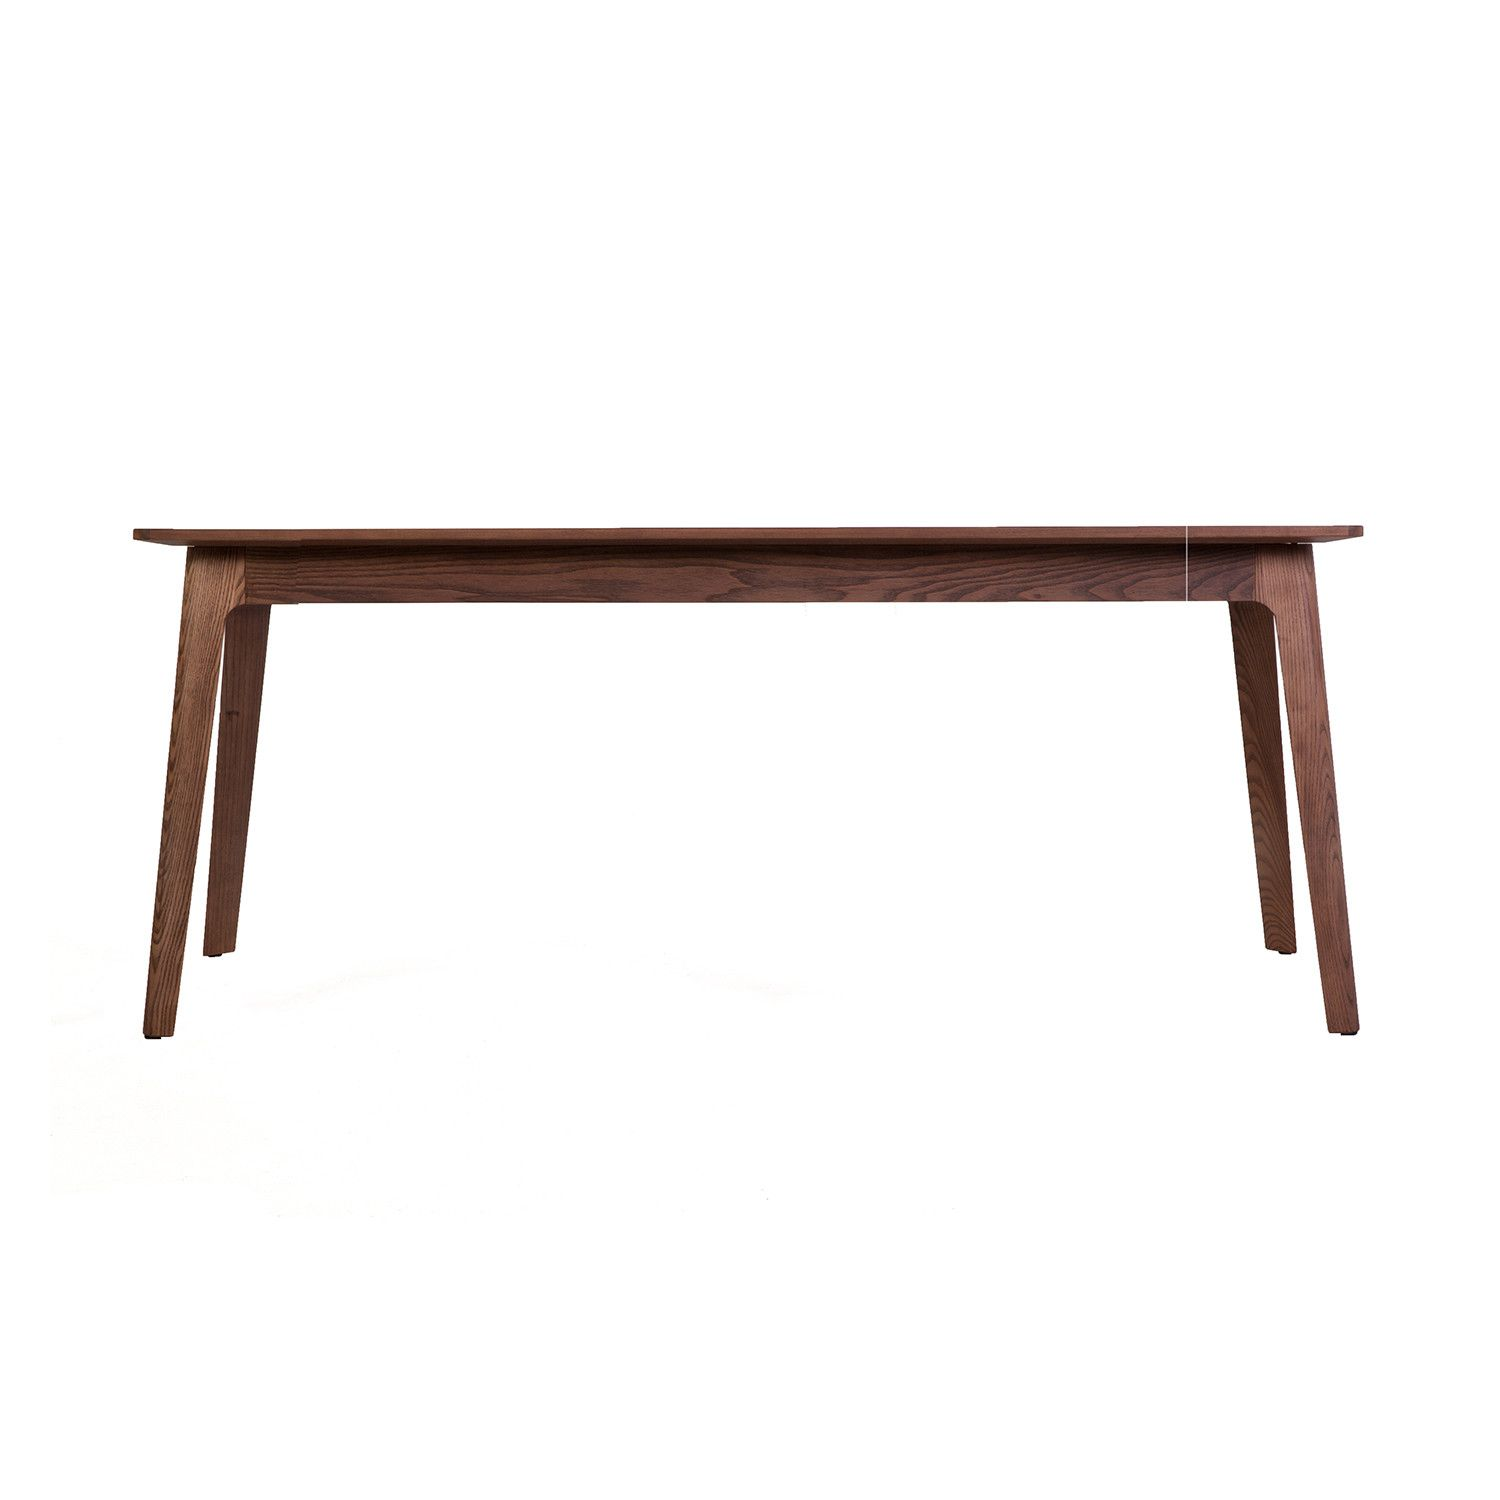 Sean Dix Street Dining Table 63 Rectangle Dining Table Mid